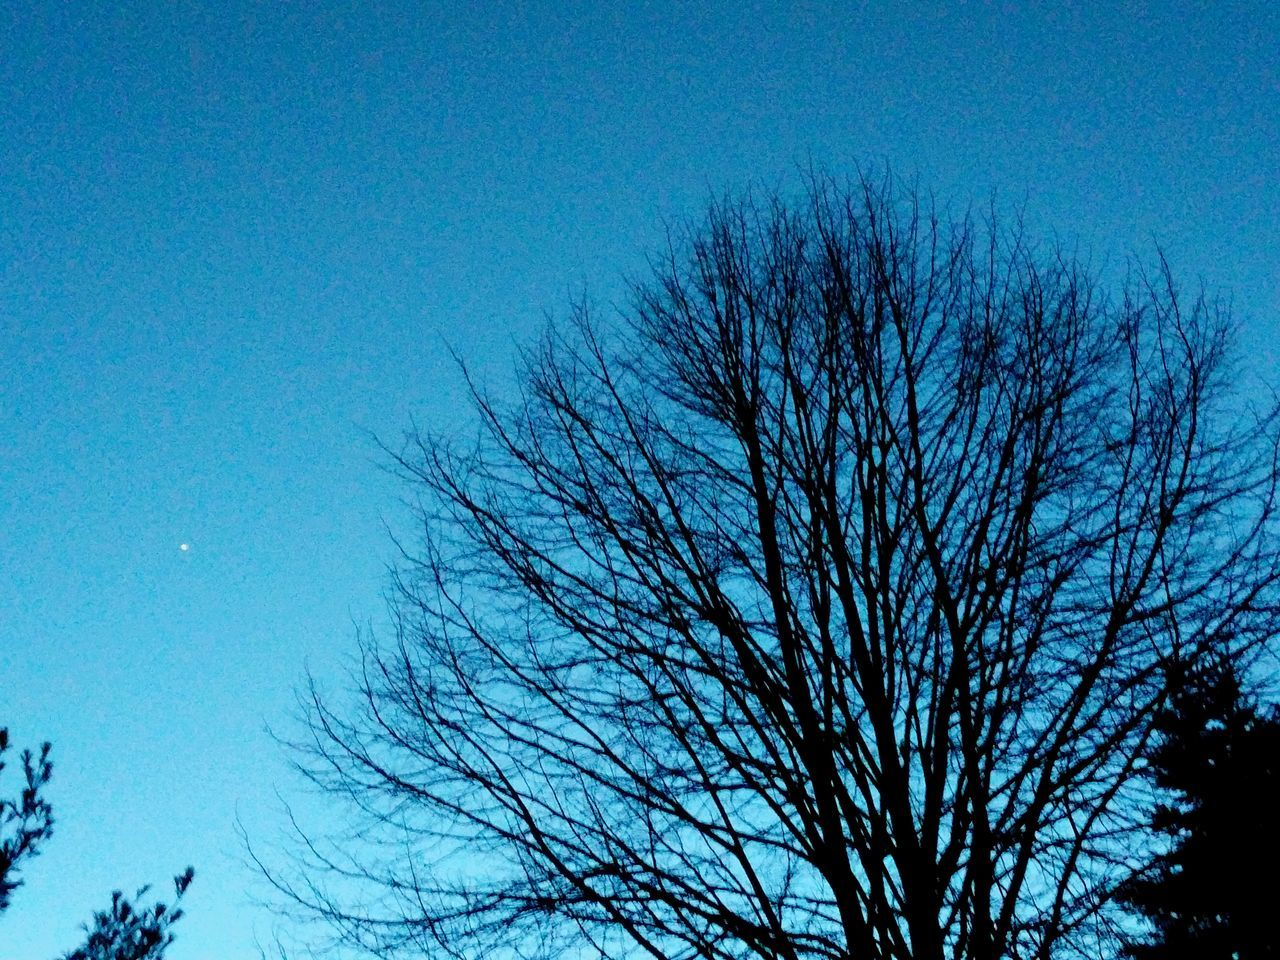 One star by tree Blue Sky Nature No People Outdoors Tranquility Astronomy Beauty In Nature EvningGlow Capture The Moment Clear Sky